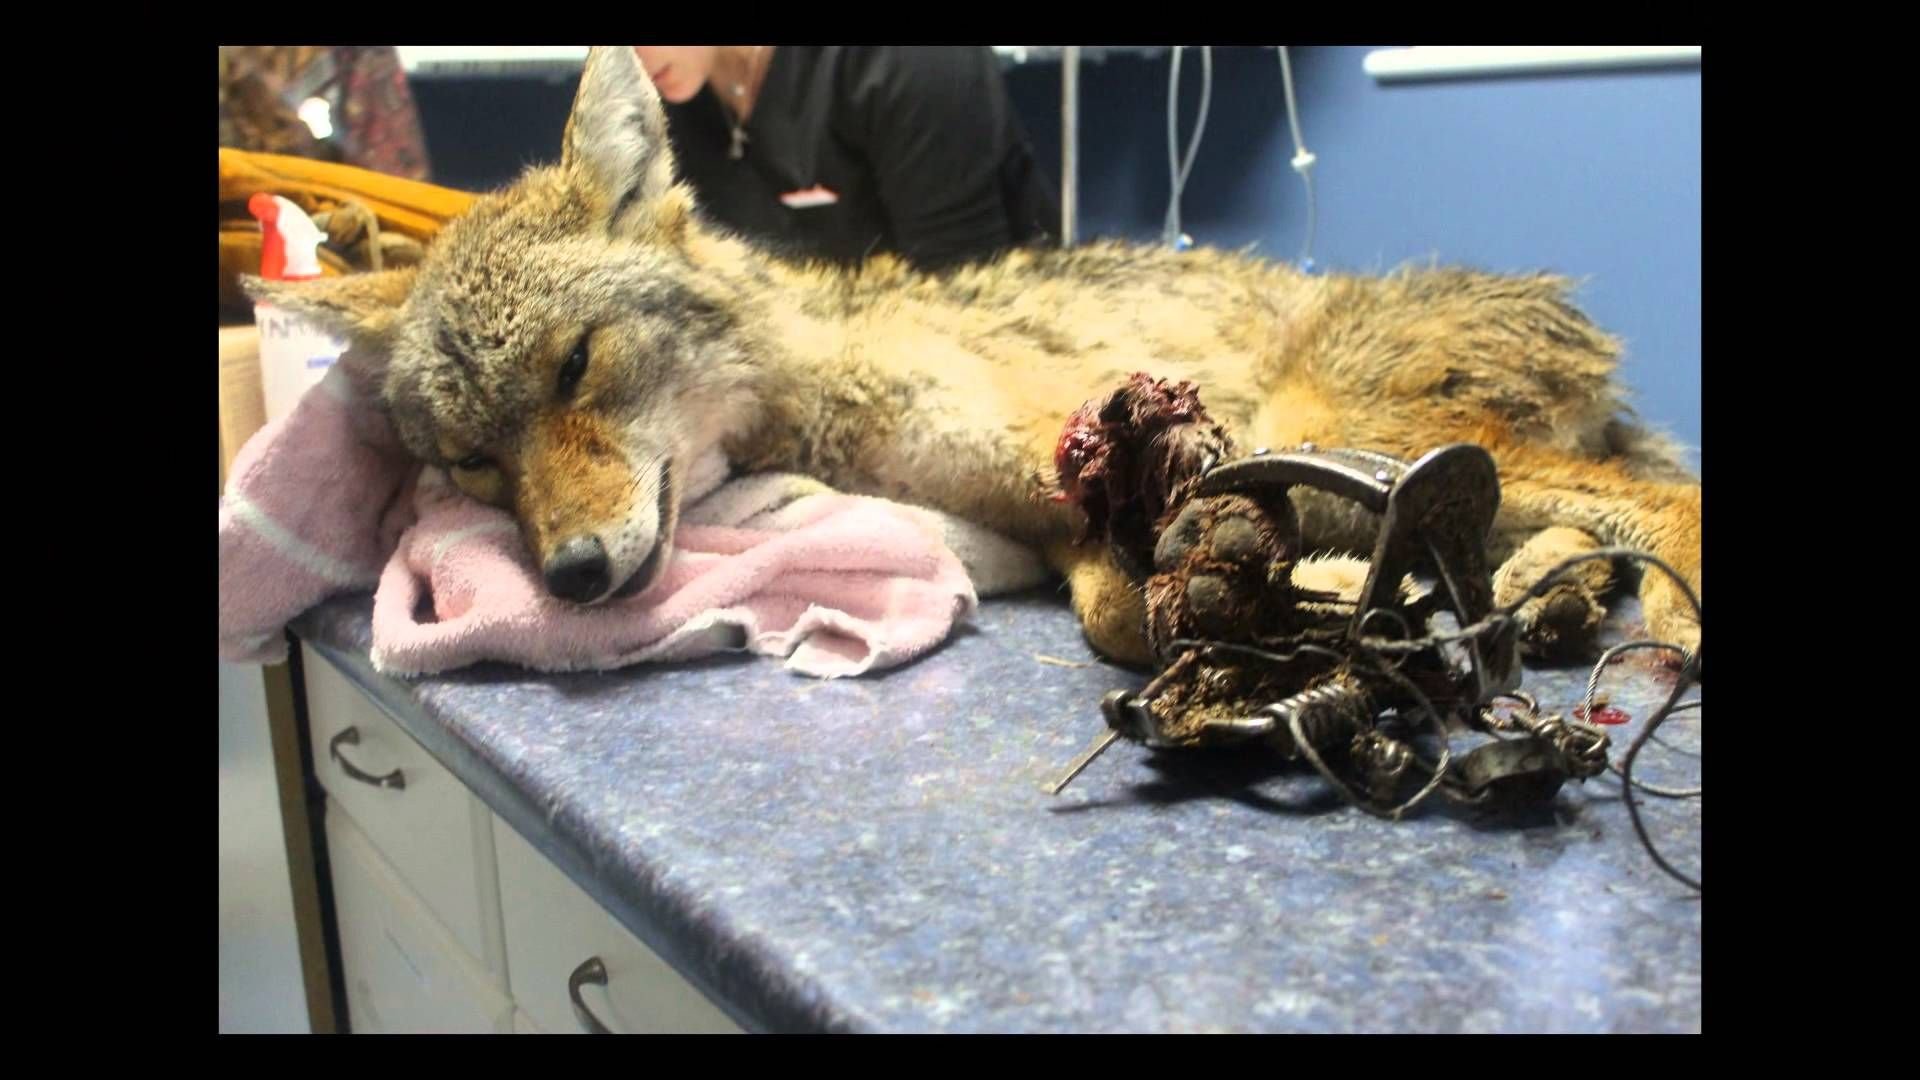 The Truth About The AIHTS Animals, Stop animal cruelty